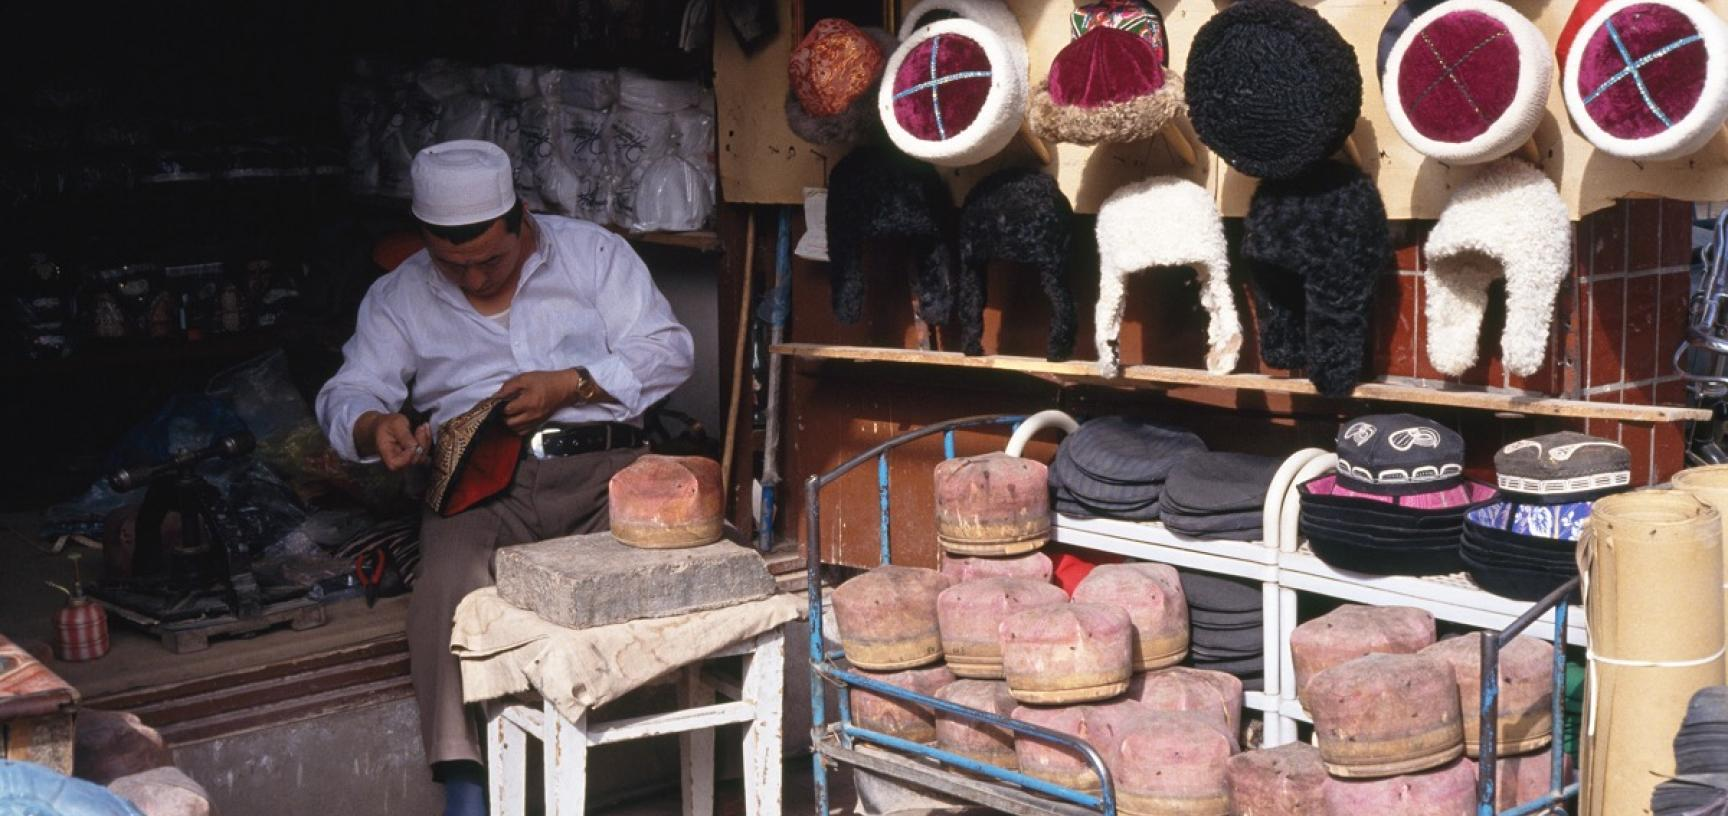 A hat-maker's shop in Kashgar, with various local styles of hat being offered for sale, and hat-moulds stacked on a bed-frame in the foreground. Photograph by Sheila Paine. Kashgar, Xinjiang, China. 1994. (Copyright Pitt Rivers Museum, University of Oxfor